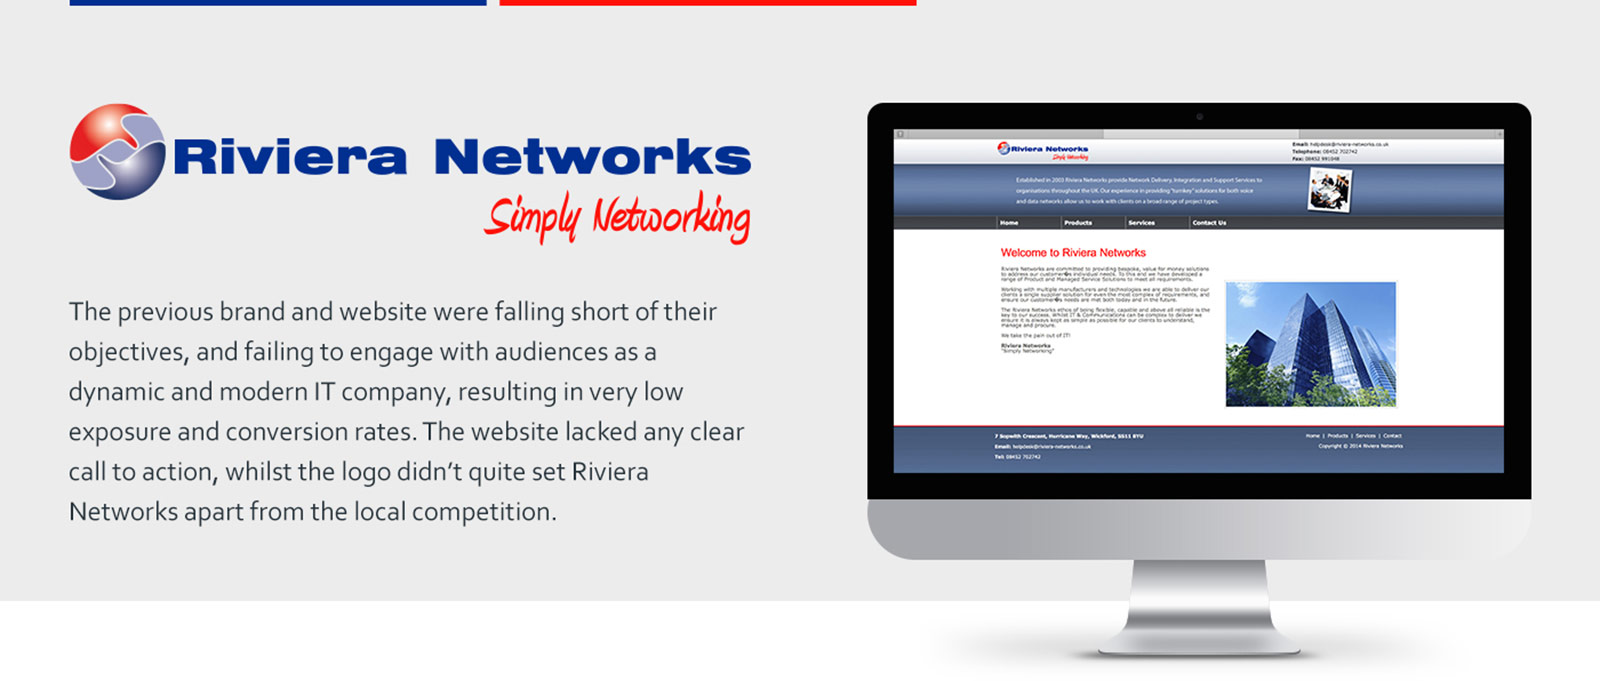 Rebranding of old Riviera Networks Brand and Website